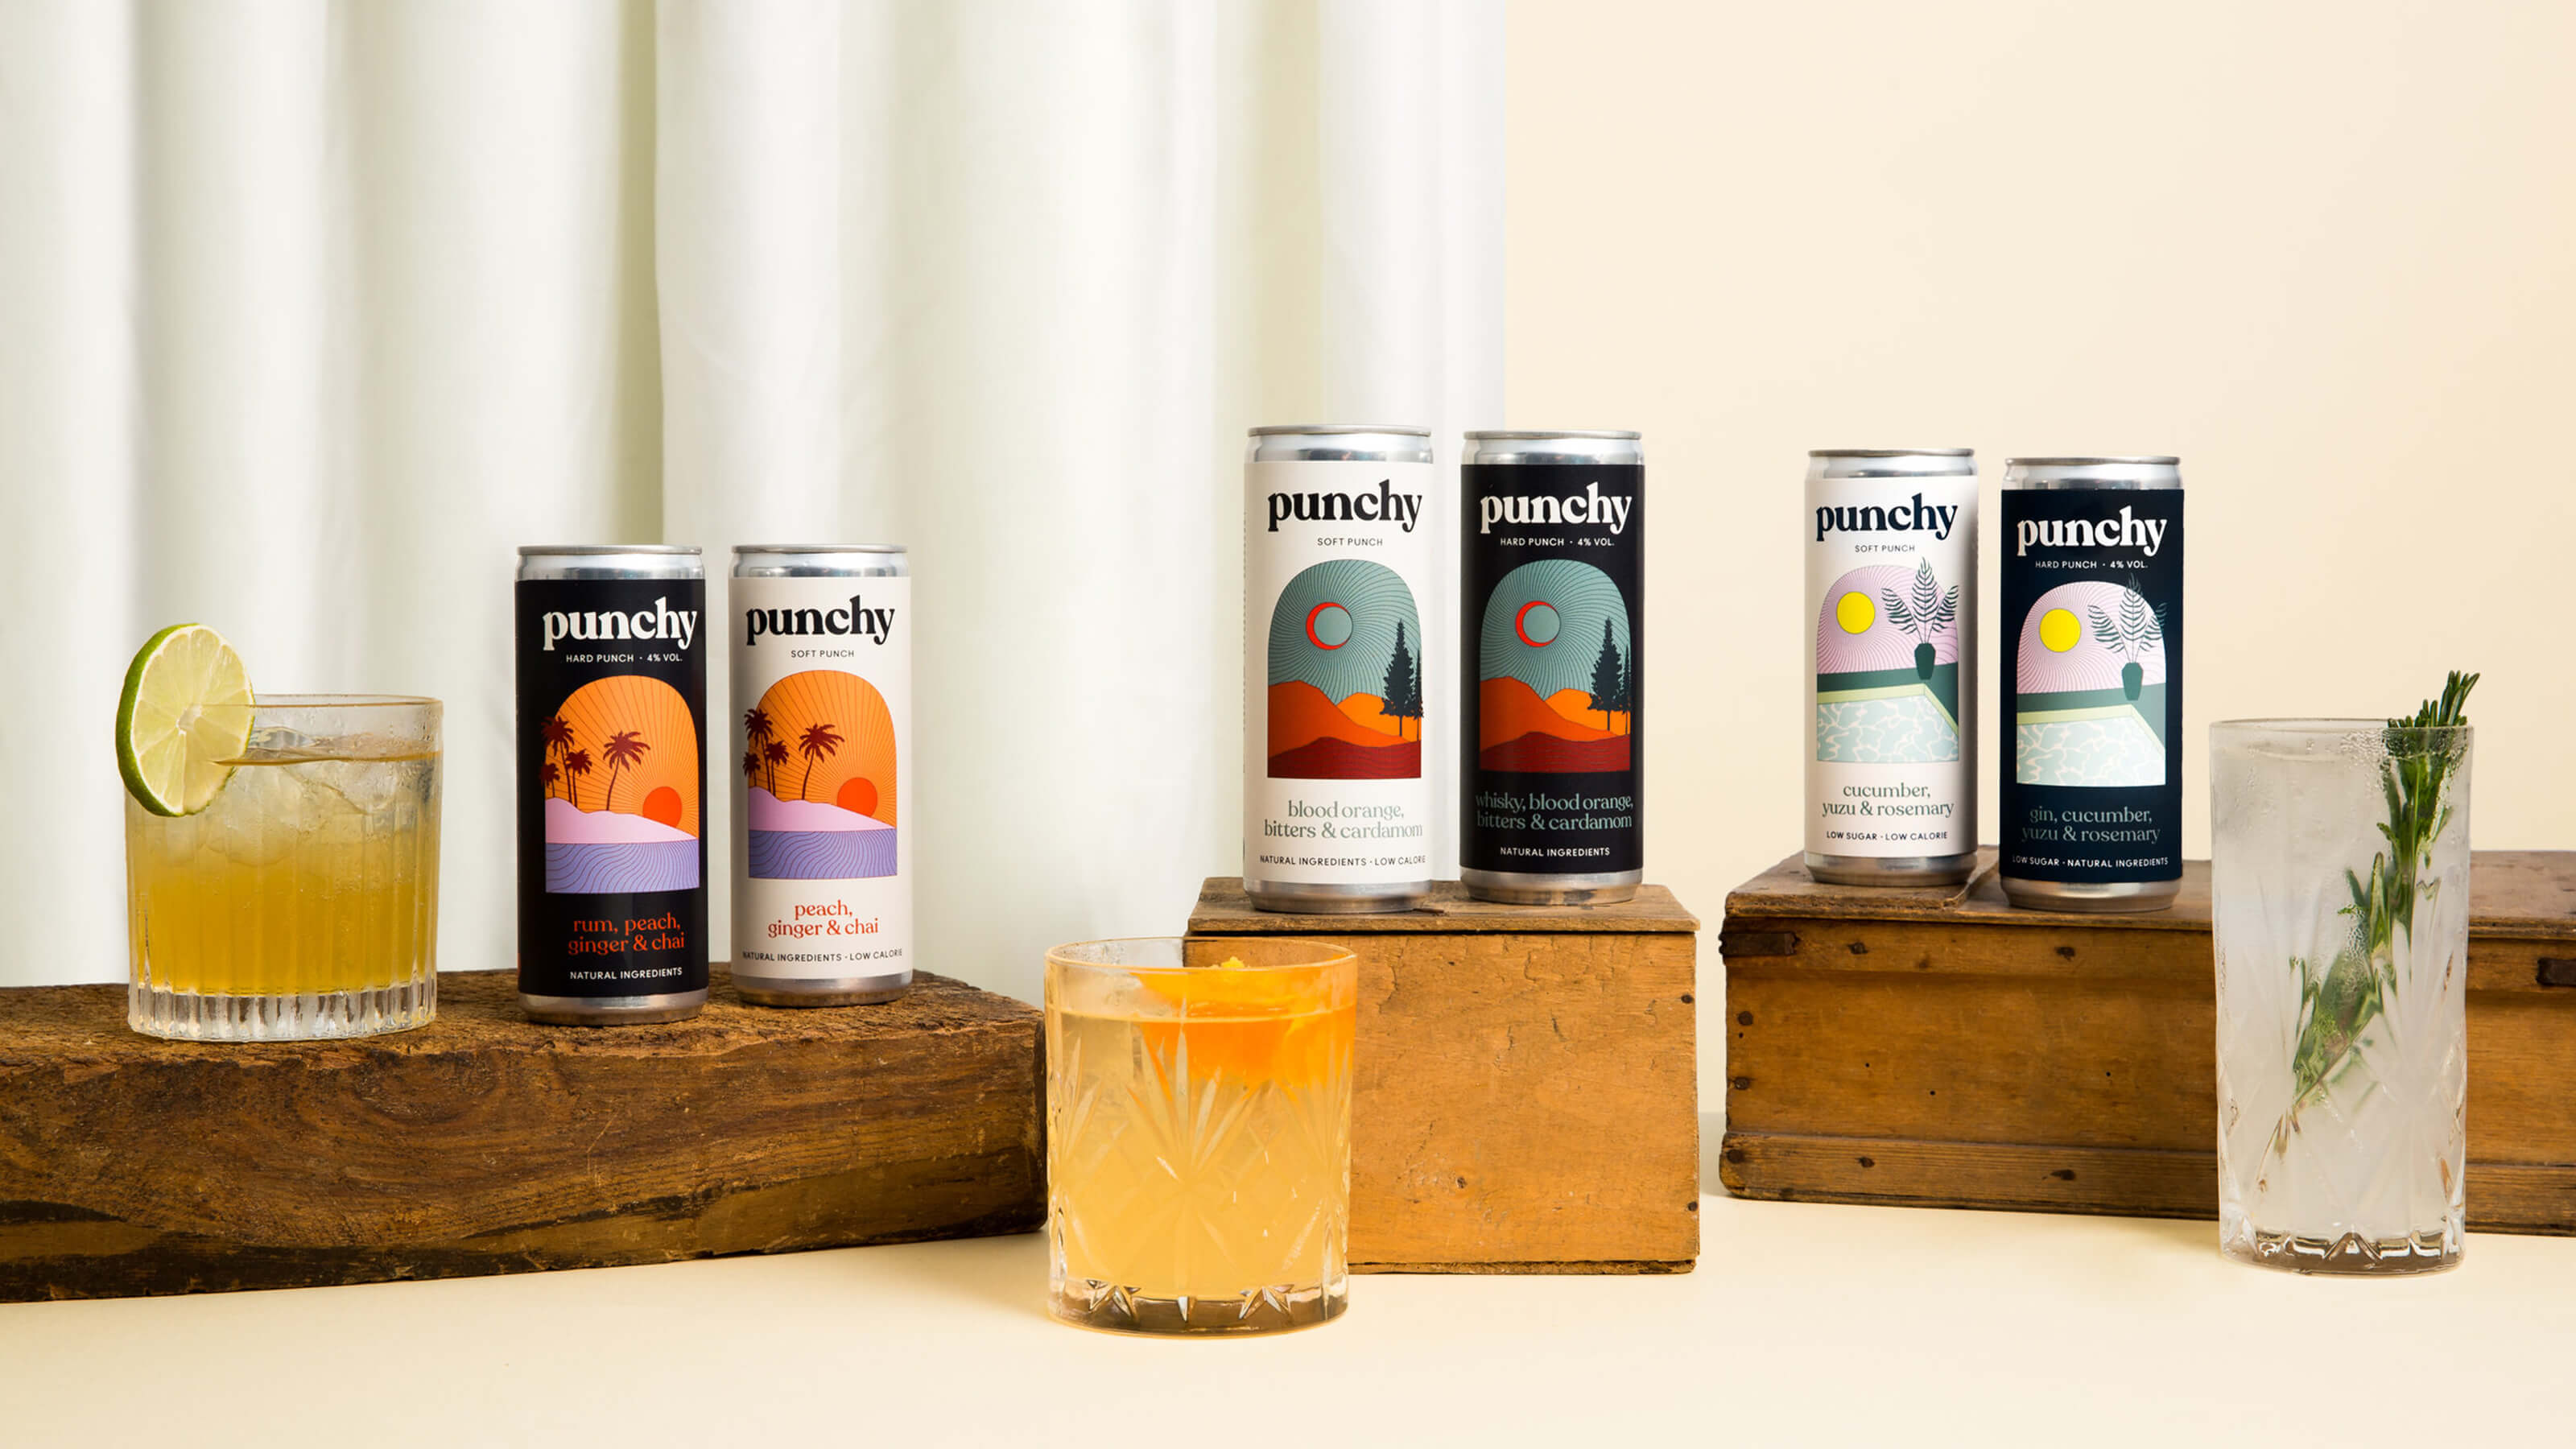 punchy alcohol free cocktail cans